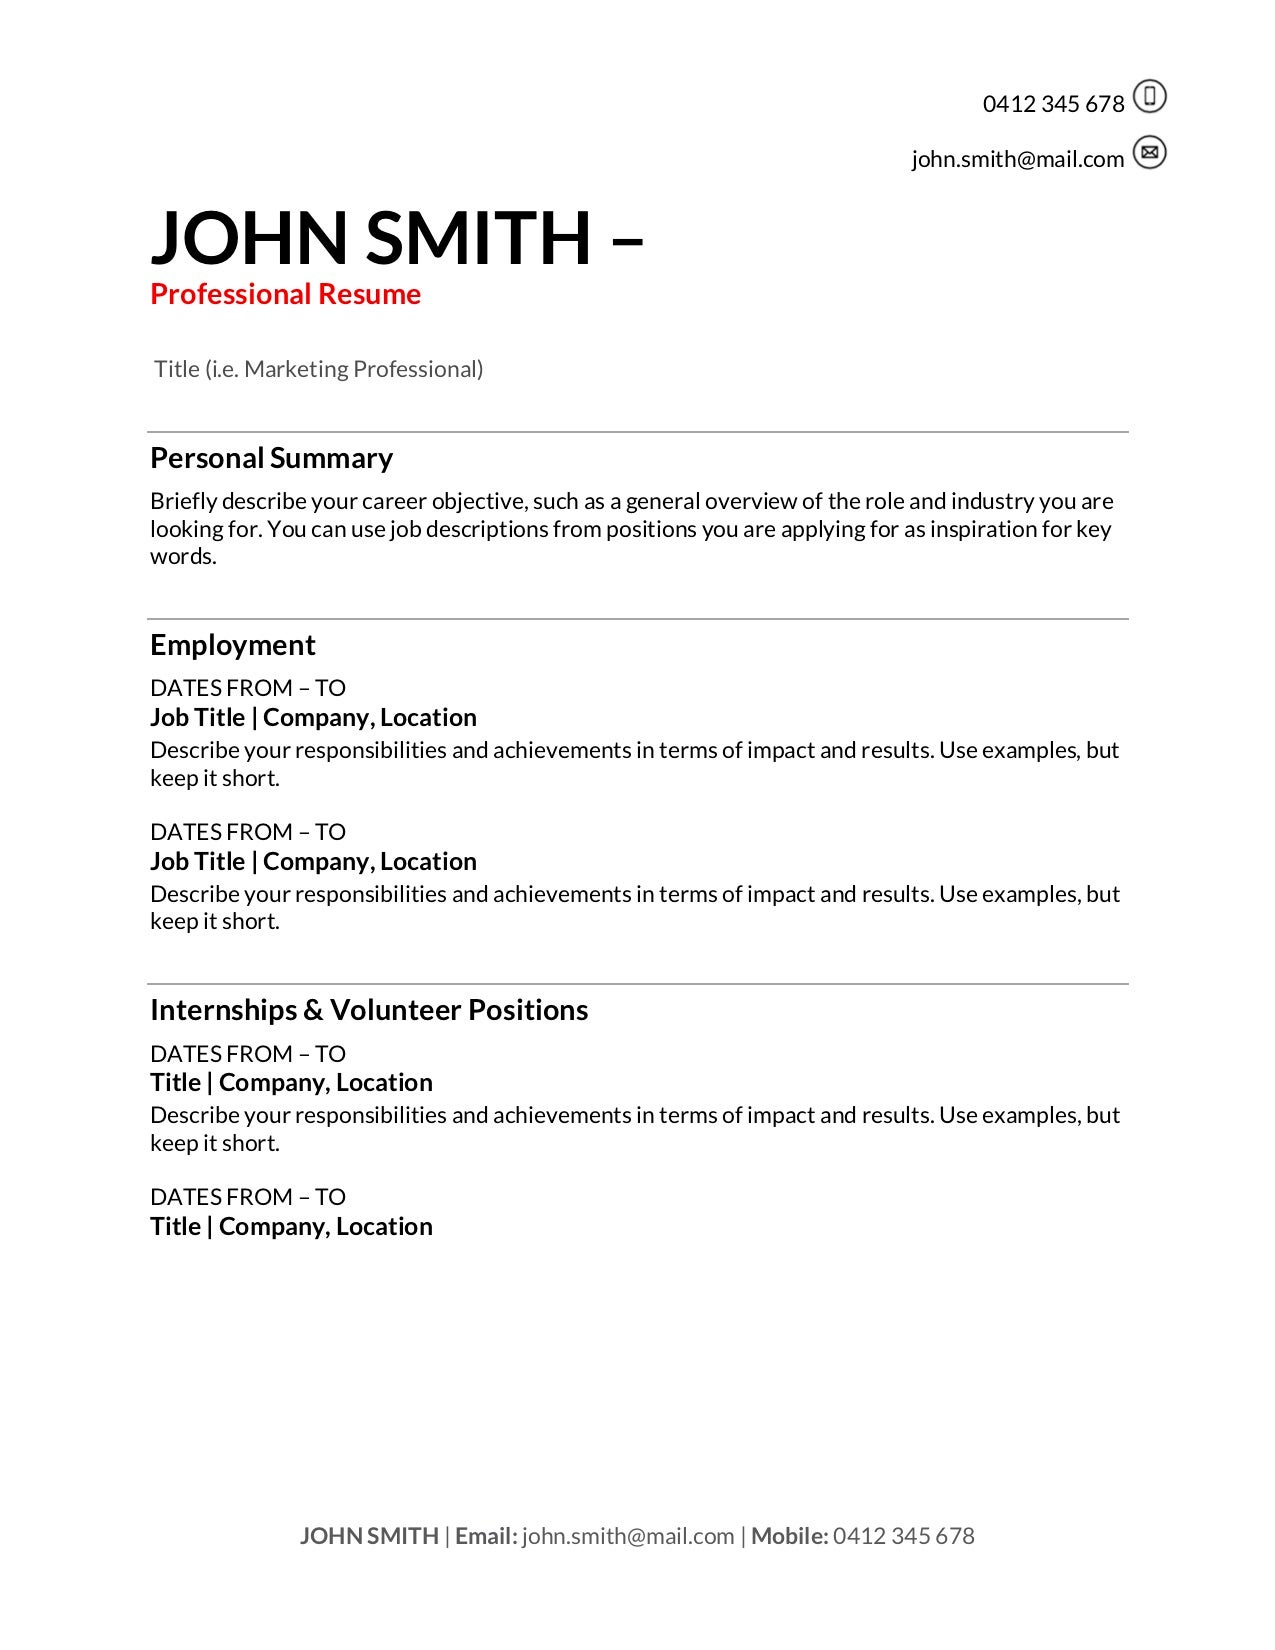 free resume templates to write in training au sample writing senior graphic designer Resume Free Sample Resume Writing